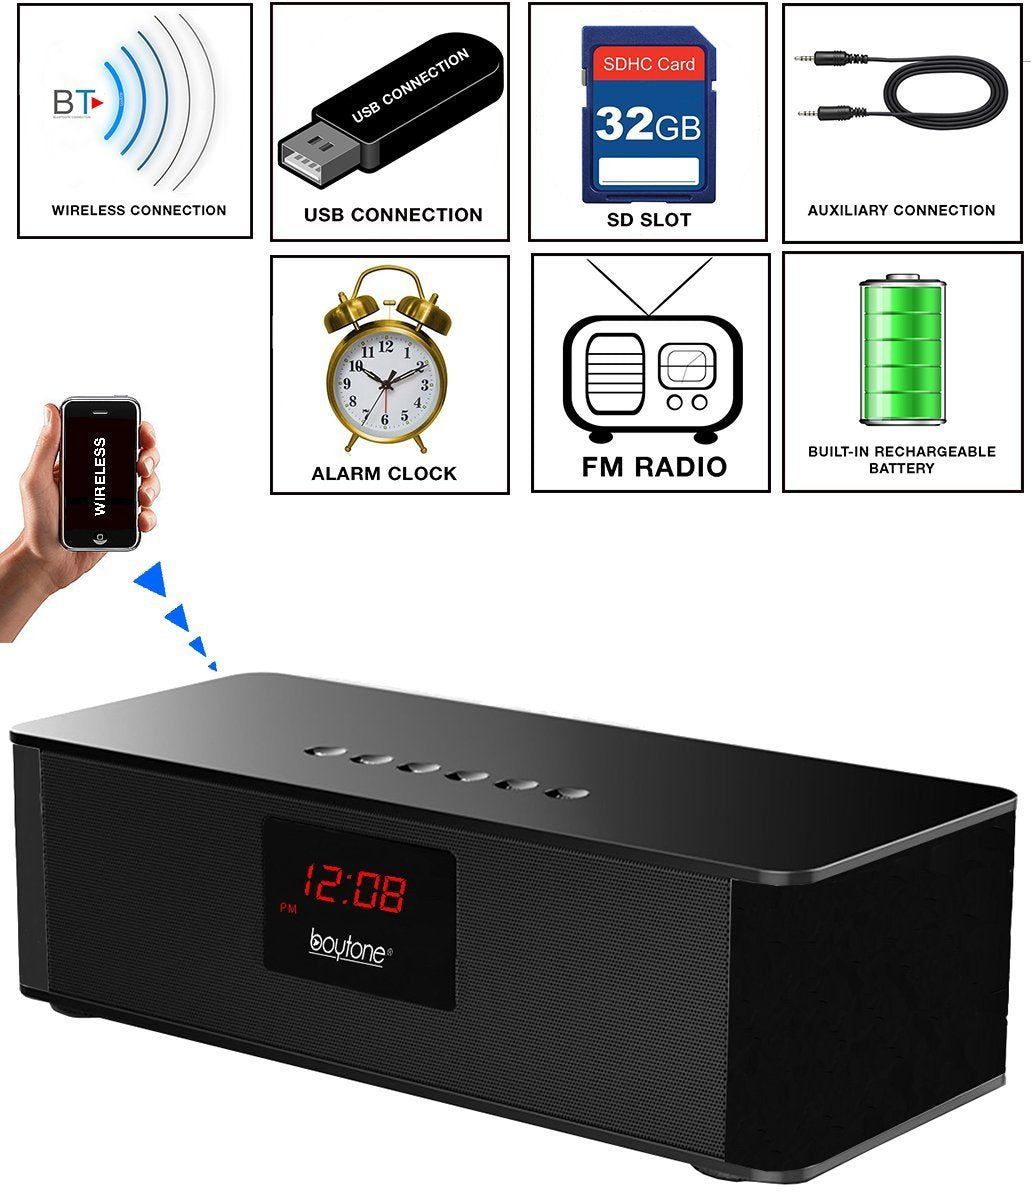 Boytone Portable Wireless Bluetooth FM Radio Alarm Clock Speaker with Built–in 8 Hour Rechargeable Battery, Mic, LED Display, USB & Micro SD Slot!